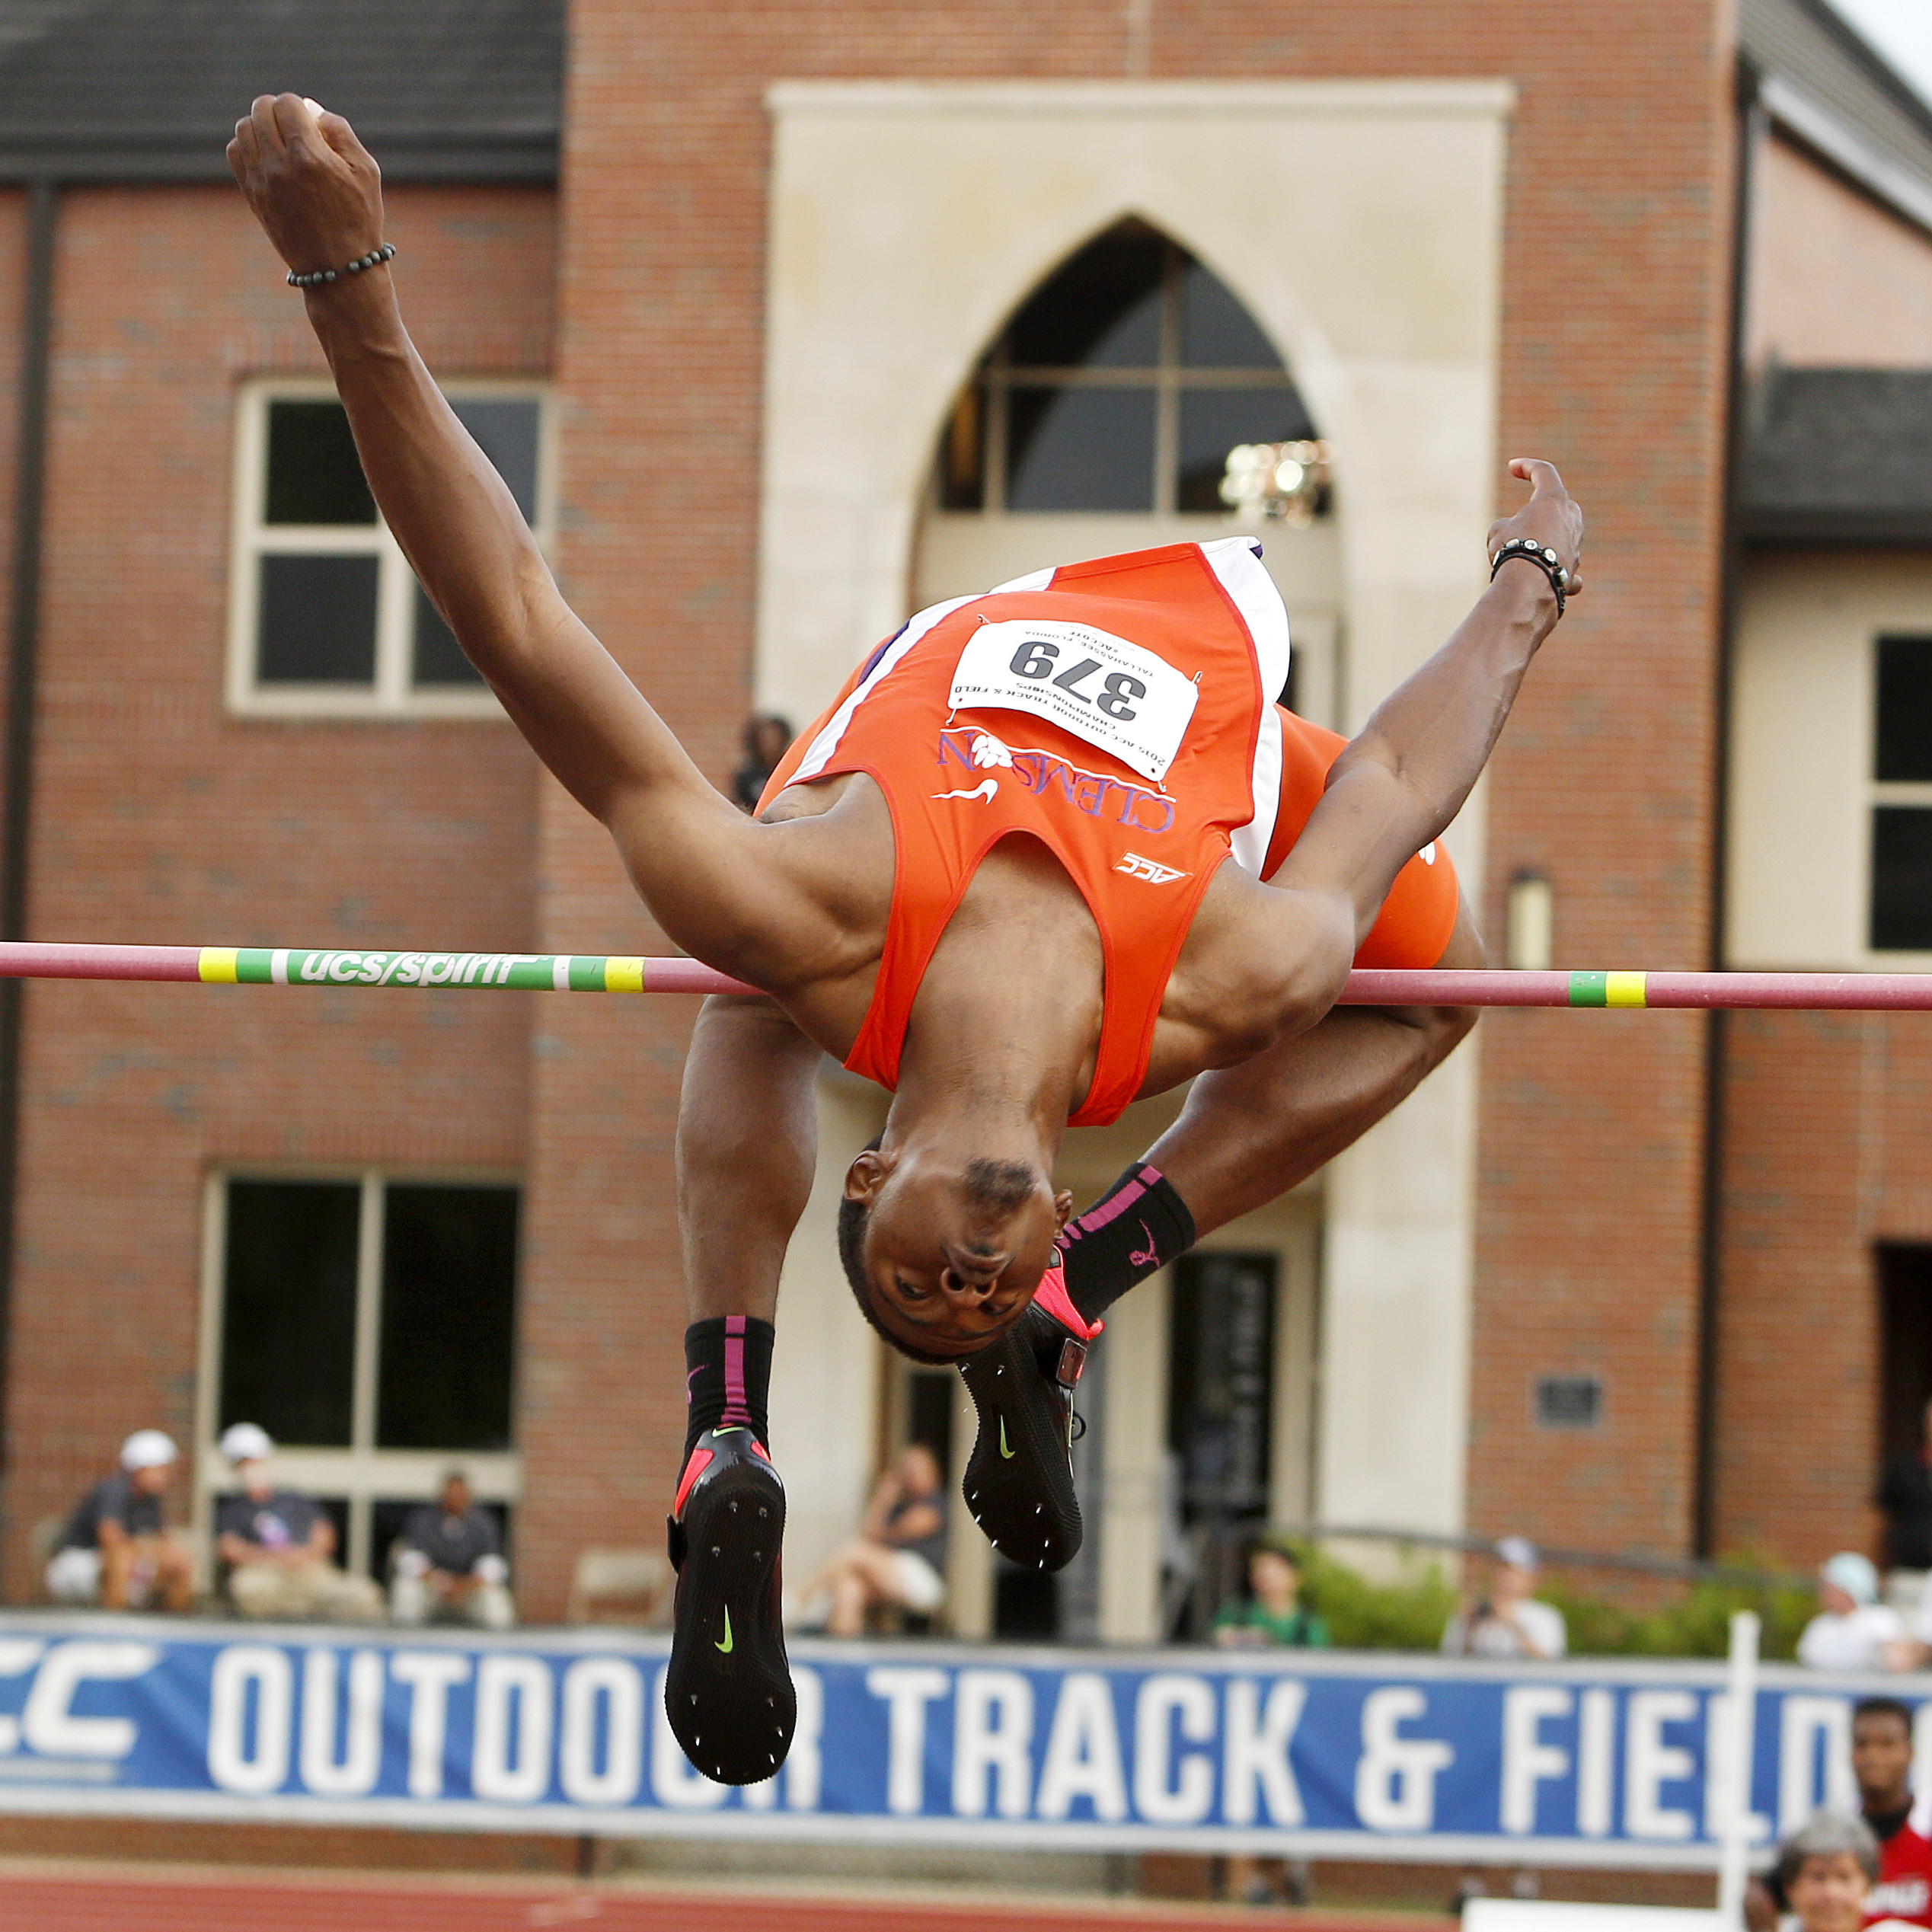 Ware Strikes Gold at ACC Outdoors